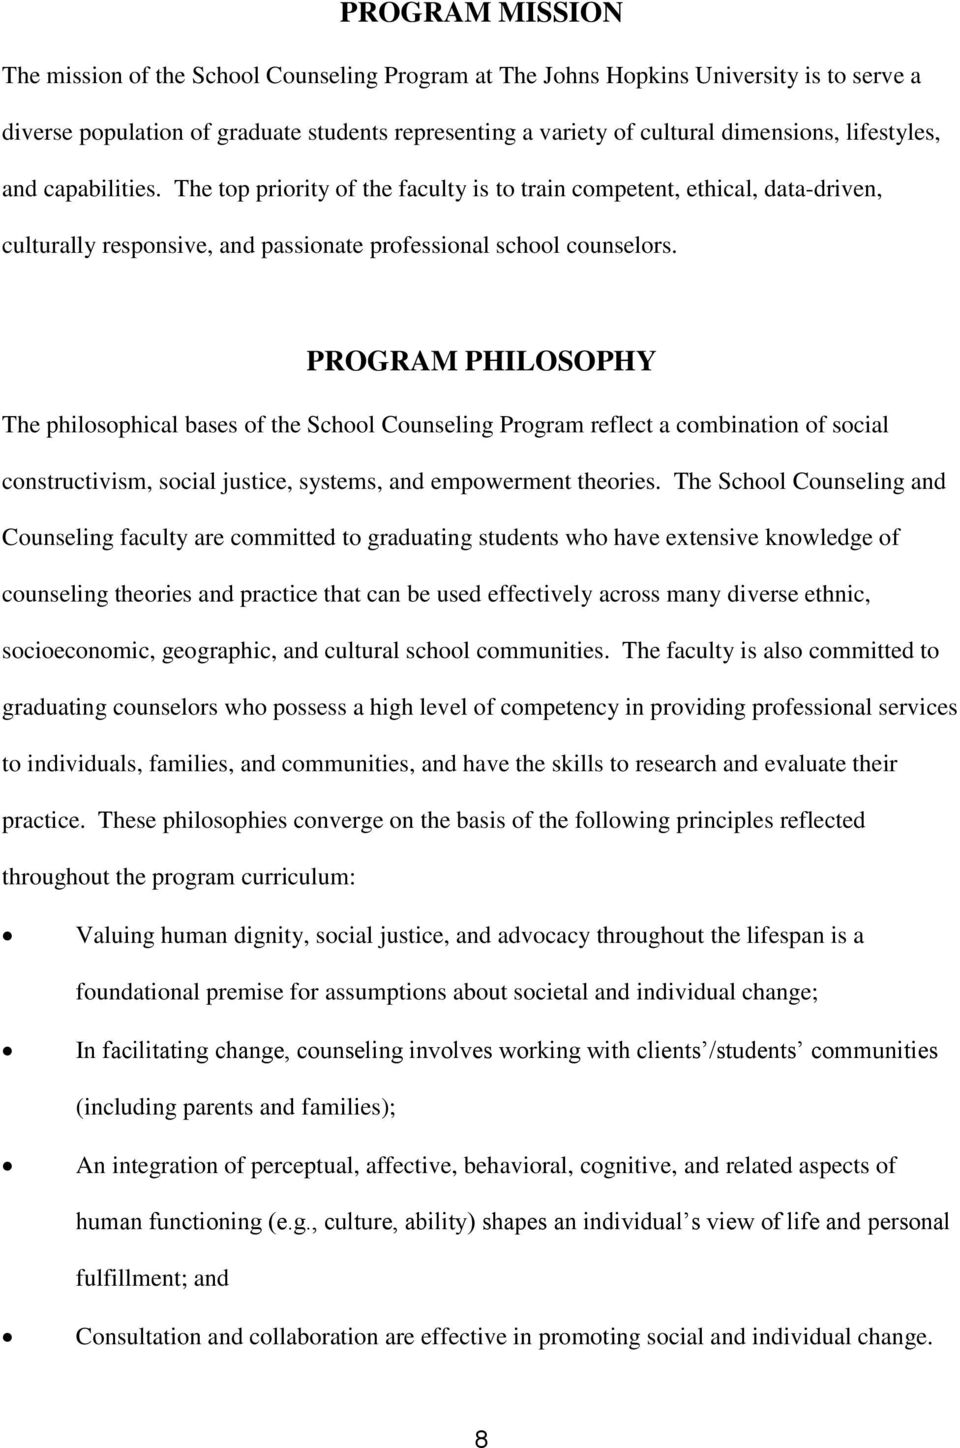 PROGRAM PHILOSOPHY The philosophical bases of the School Counseling Program reflect a combination of social constructivism, social justice, systems, and empowerment theories.